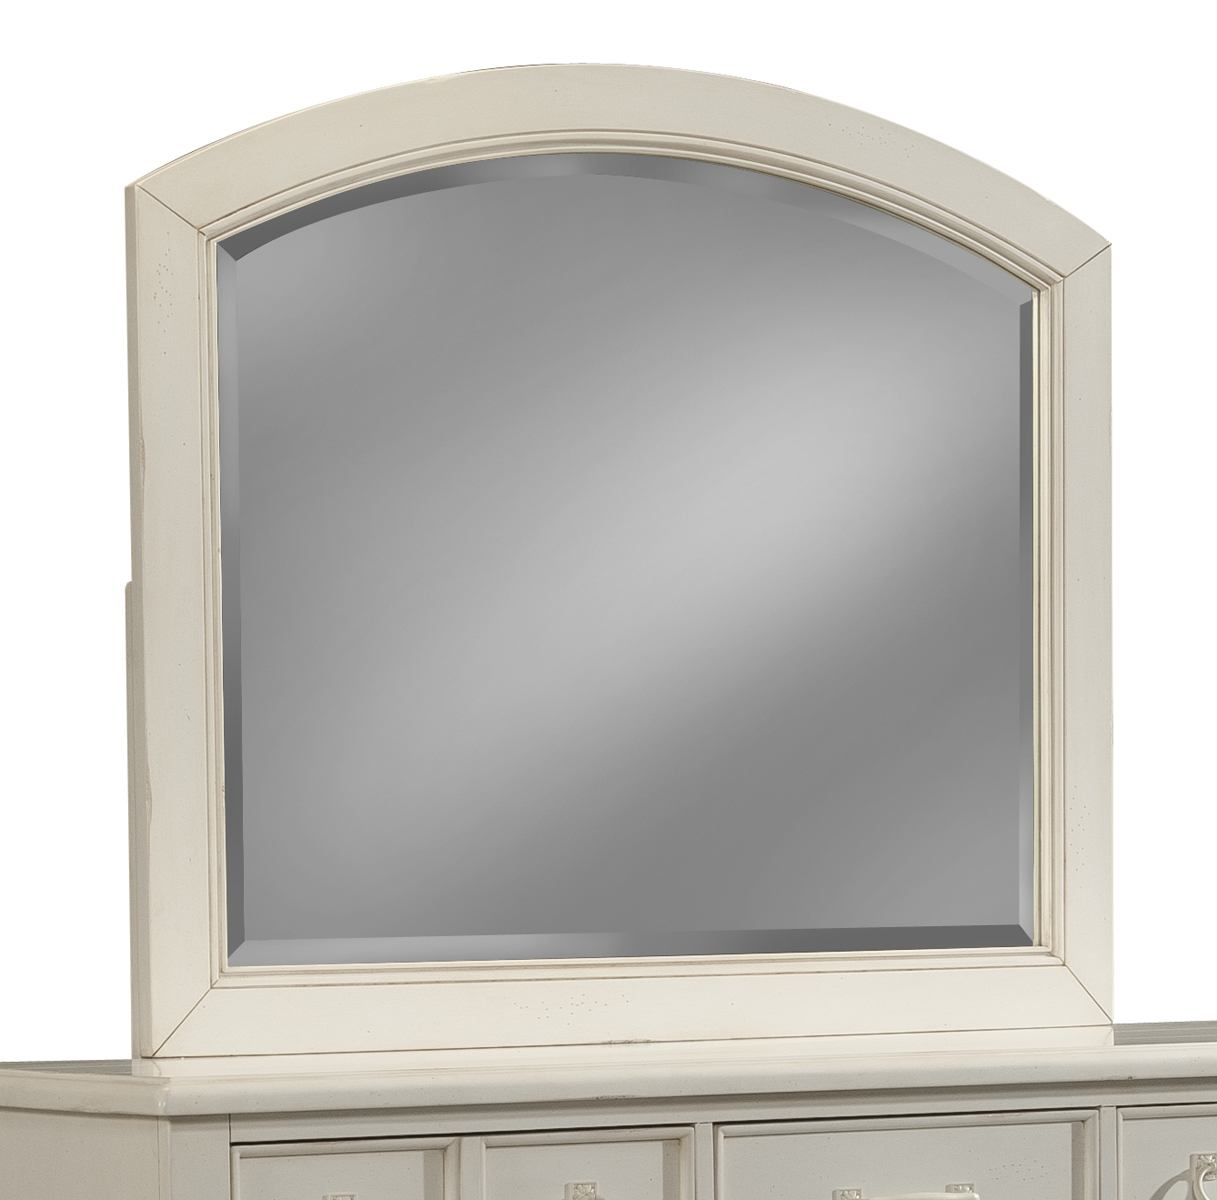 Klaussner Sea Breeze Arched Mirror in White 424-660